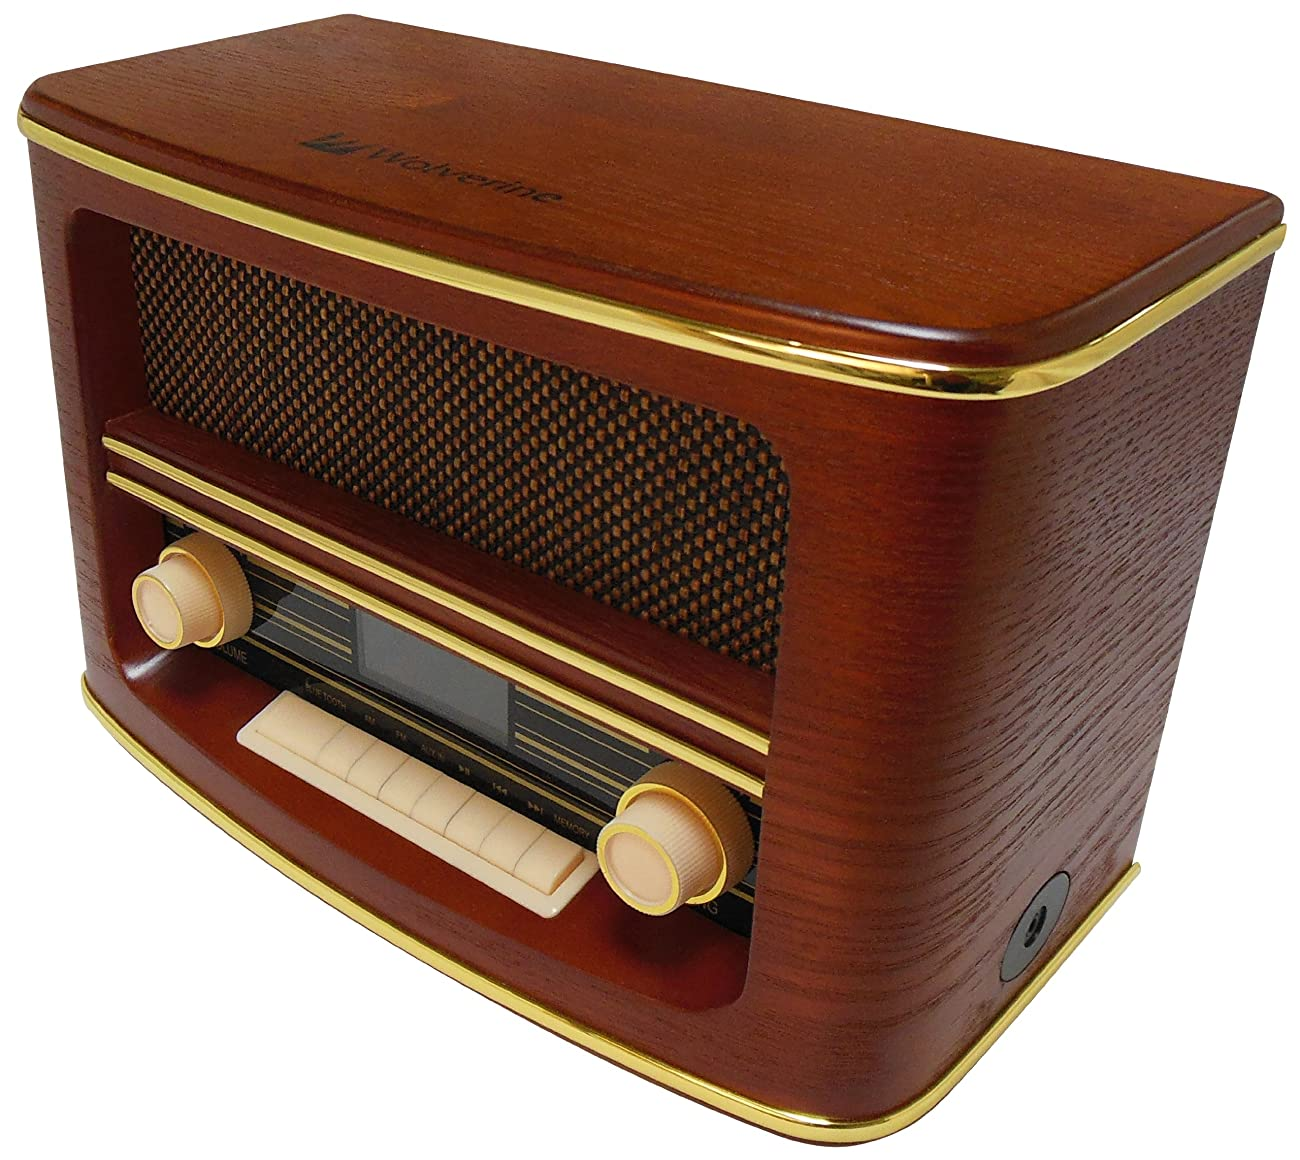 Wolverine RSR100 Retro Table Top Bluetooth Speaker and AM/FM Radio 1